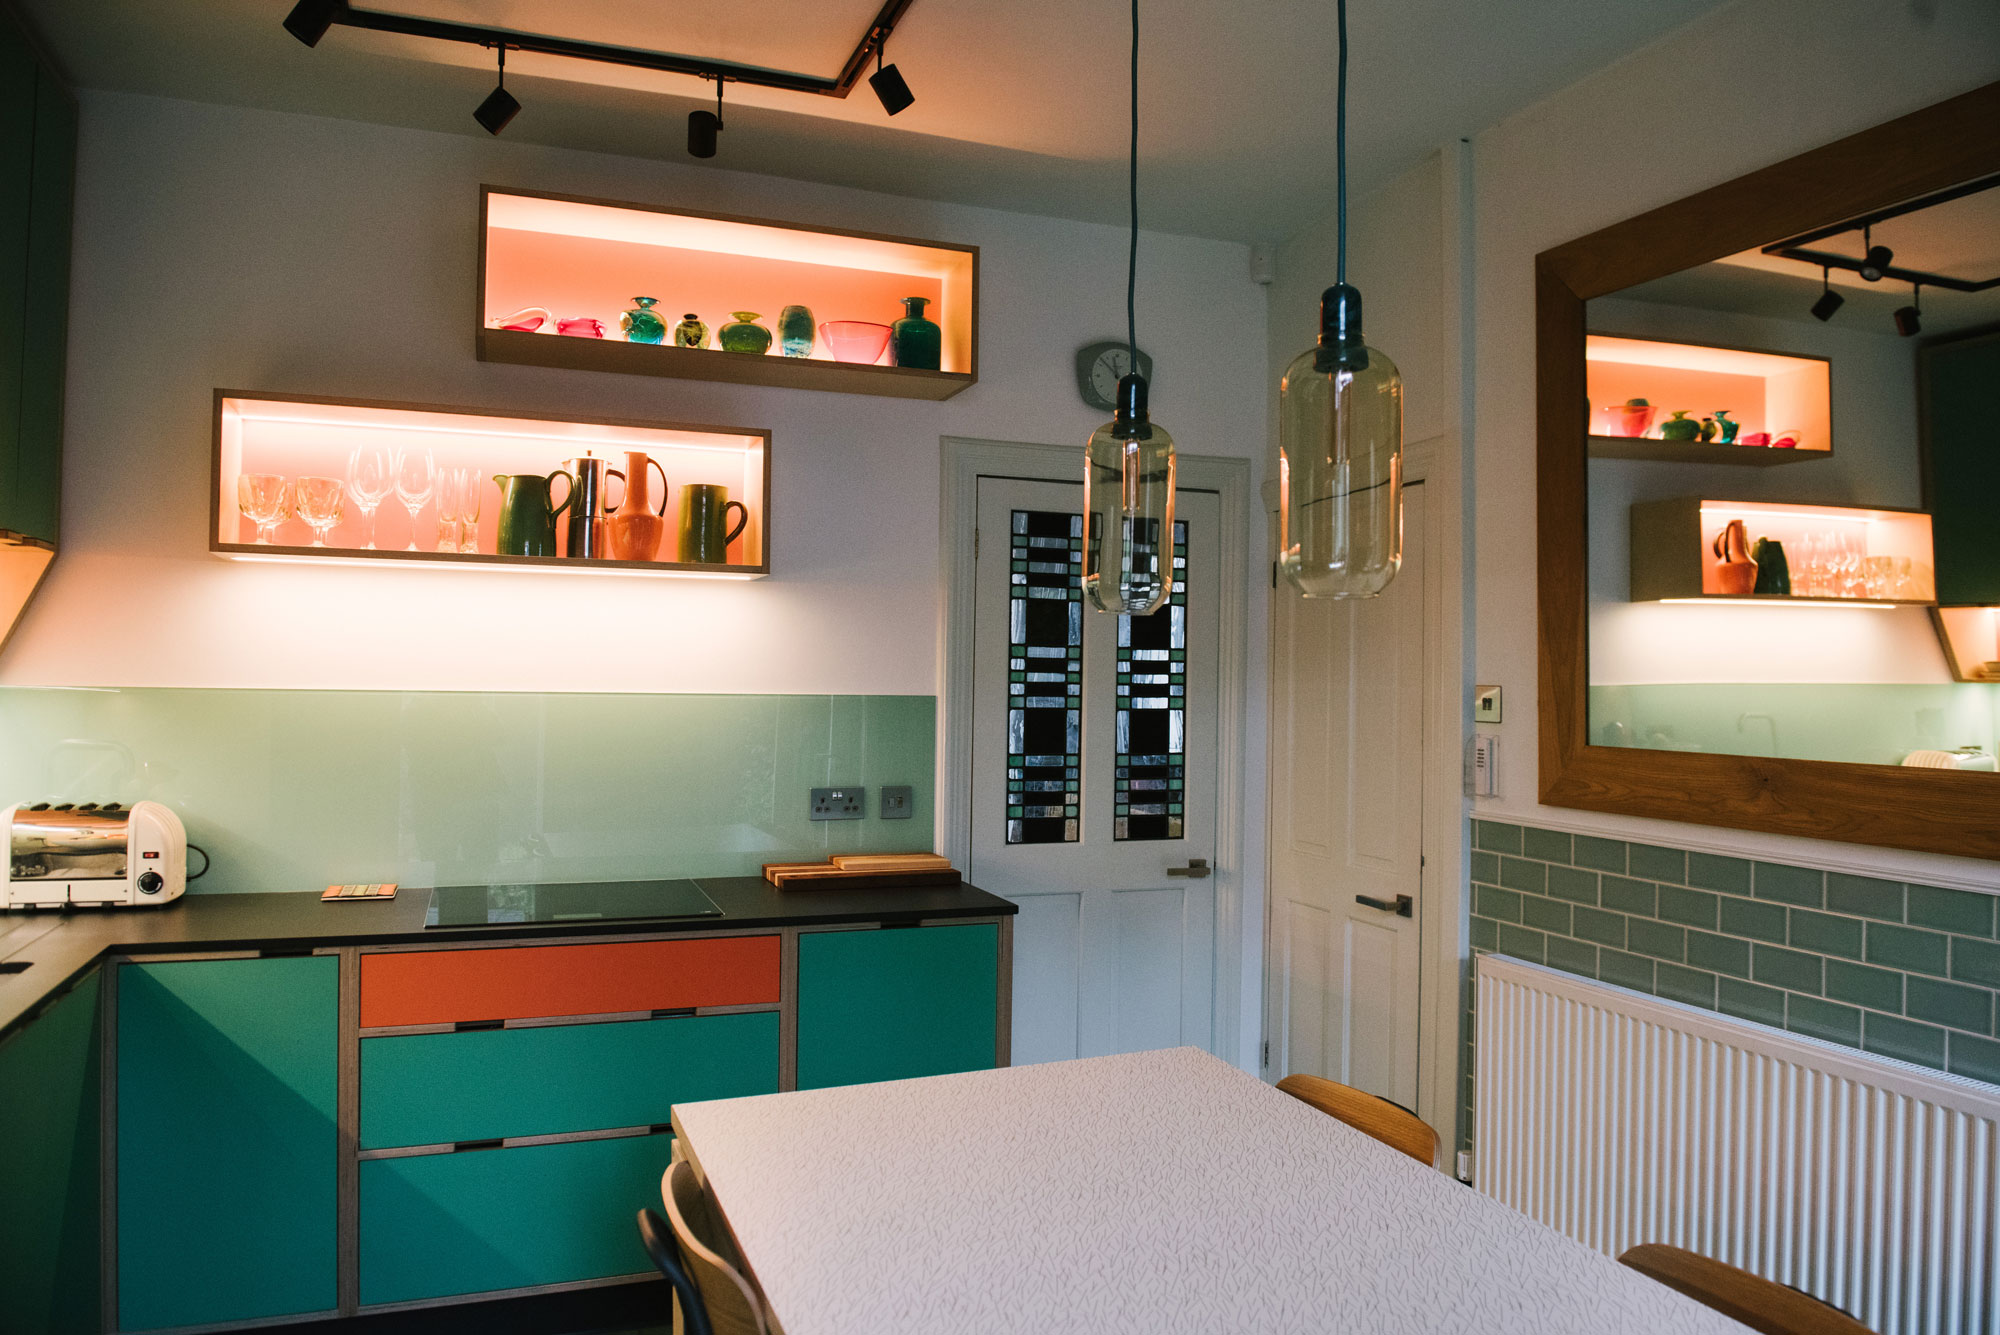 Illuminated Wall Shelving in 70's Style Plywood Kitchen